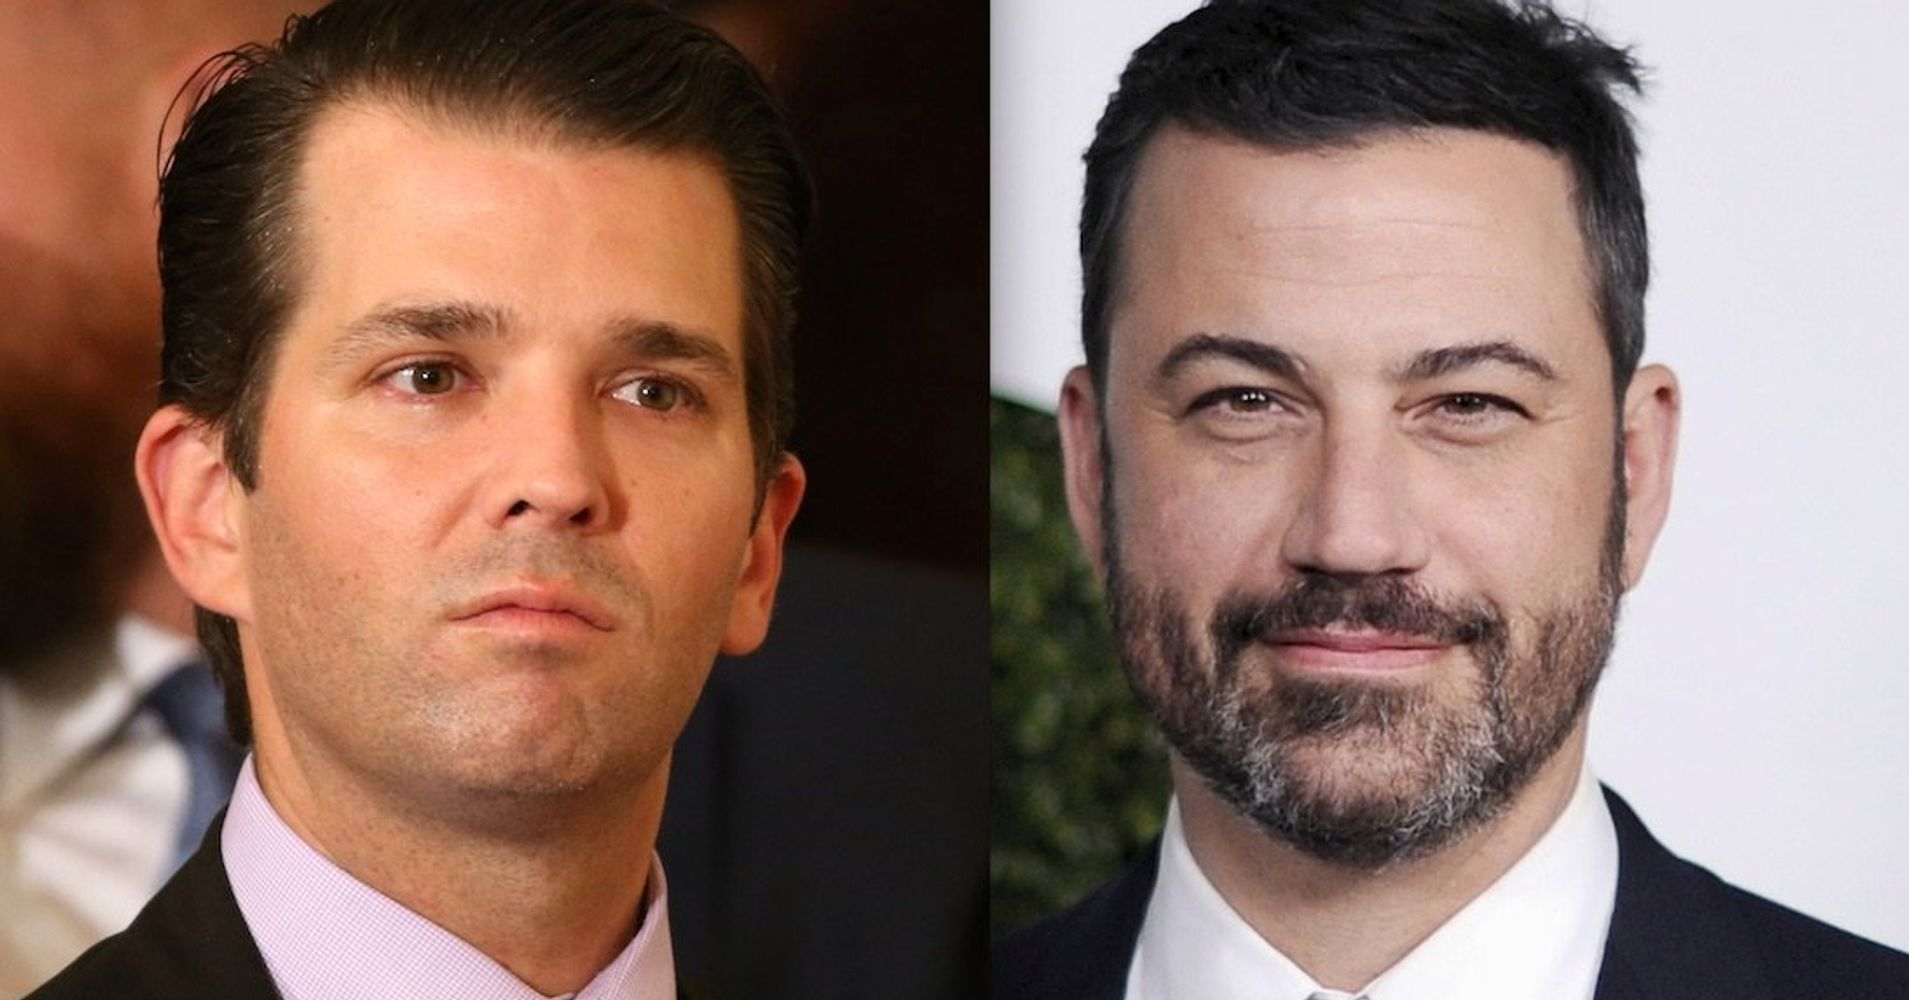 Trump Jr's Attack On Jimmy Kimmel Backfires Spectacularly